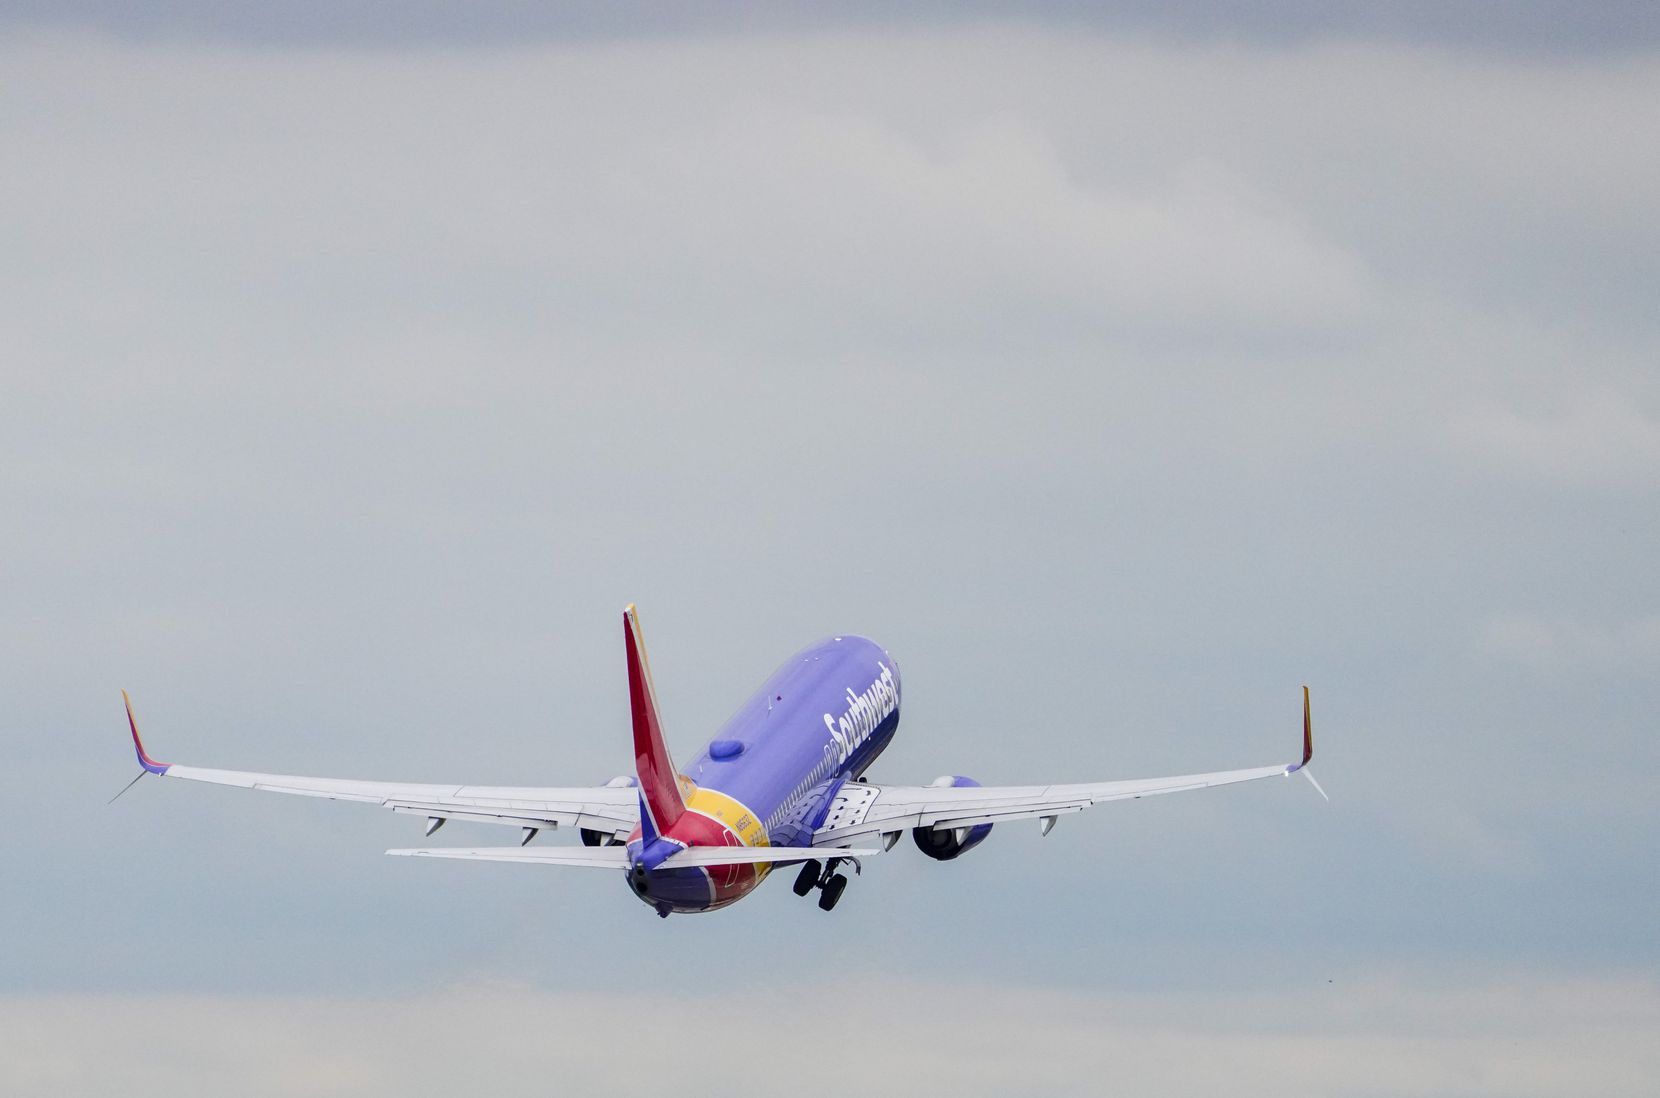 A Southwest Airlines Boeing 737-800 takes off at Love Field on Wednesday, Sept. 23, 2020, in Dallas.